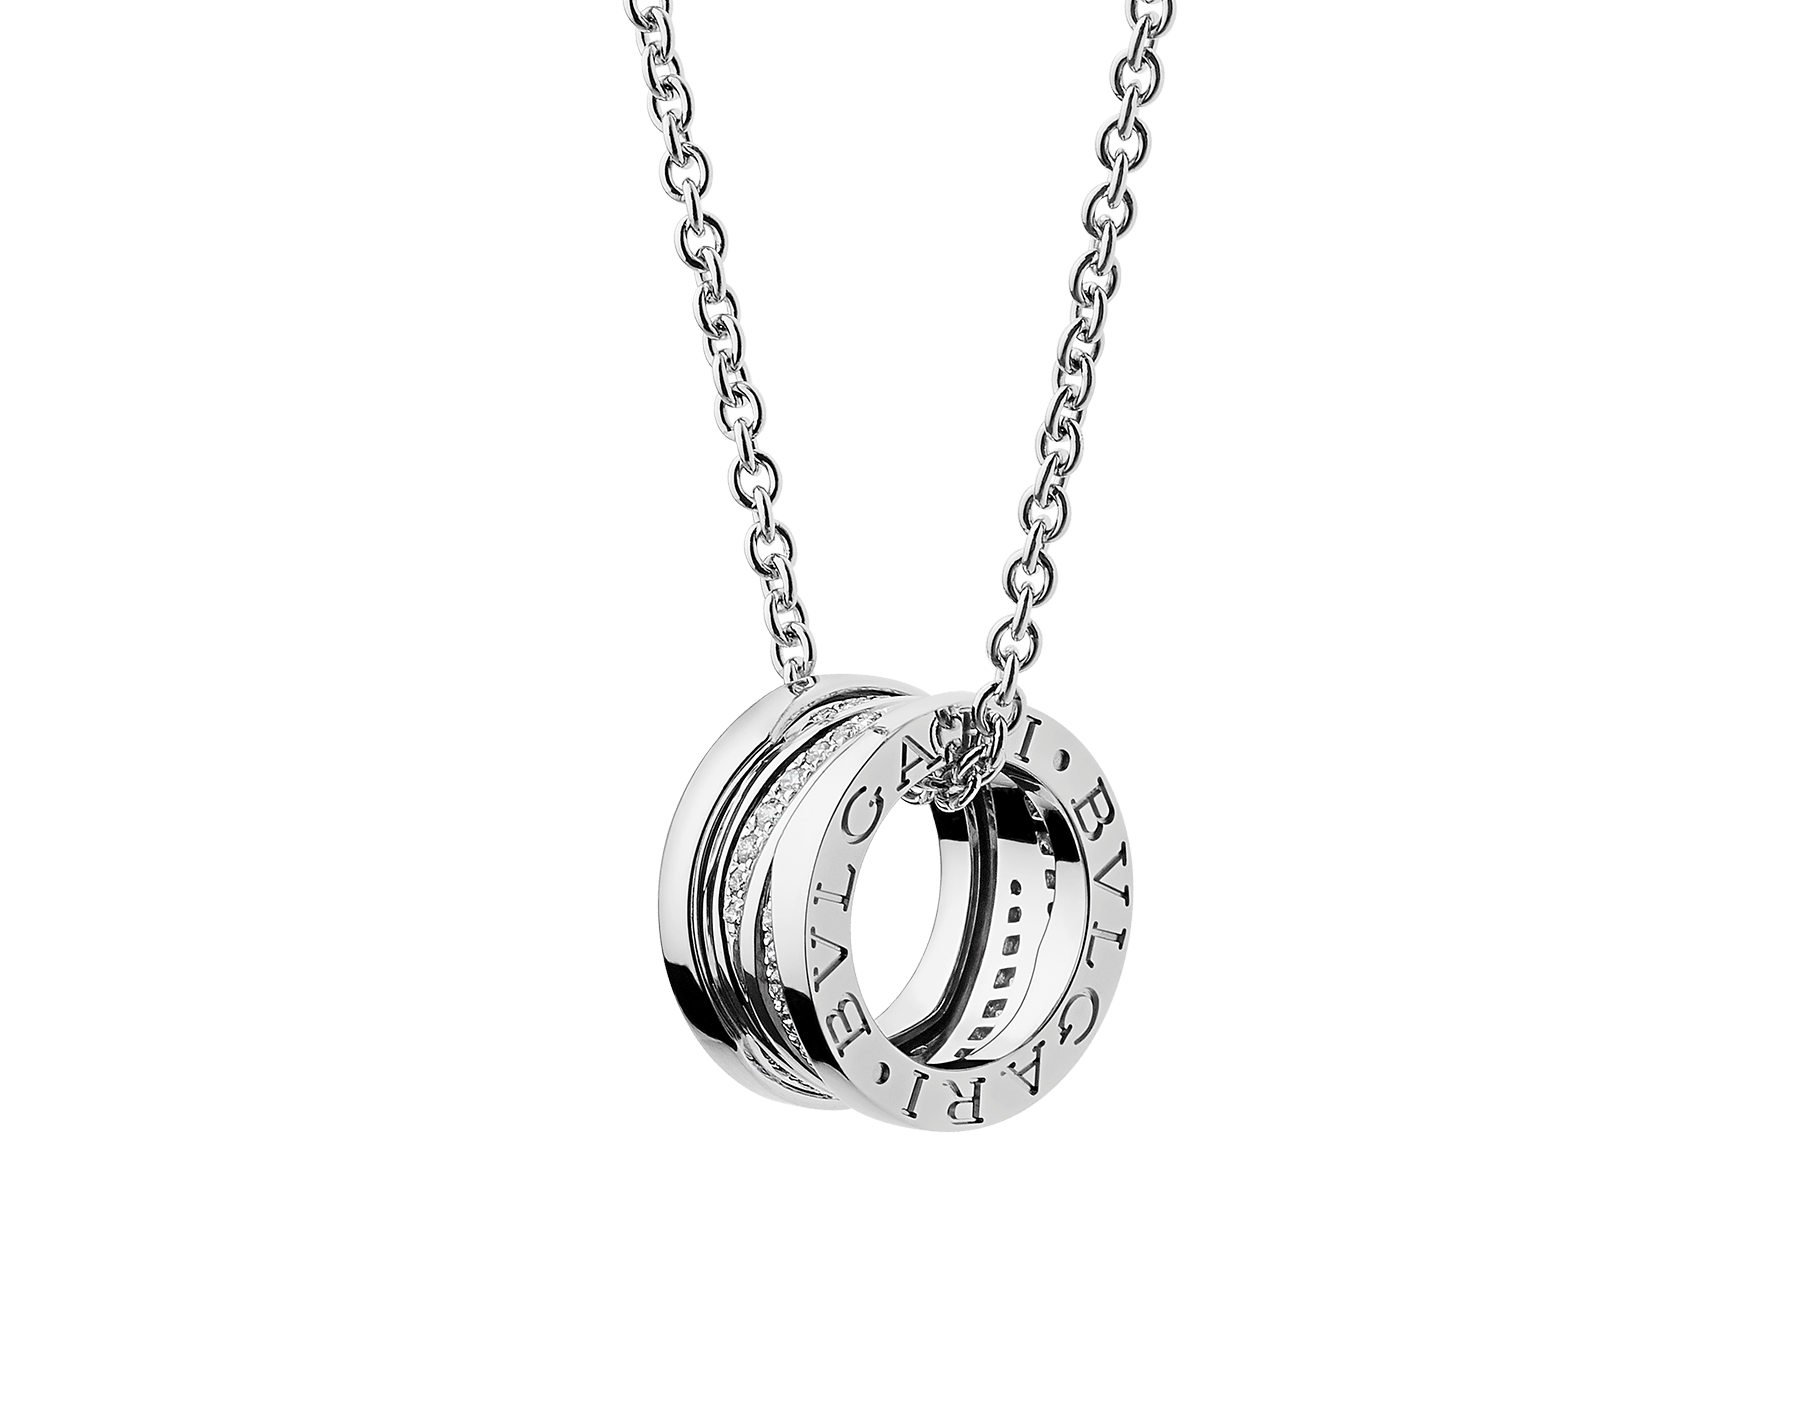 B.zero1 Design Legend necklace with 18 kt white gold pendant set with pavé diamonds on the spiral and 18 kt white gold chain. 355061 image 1